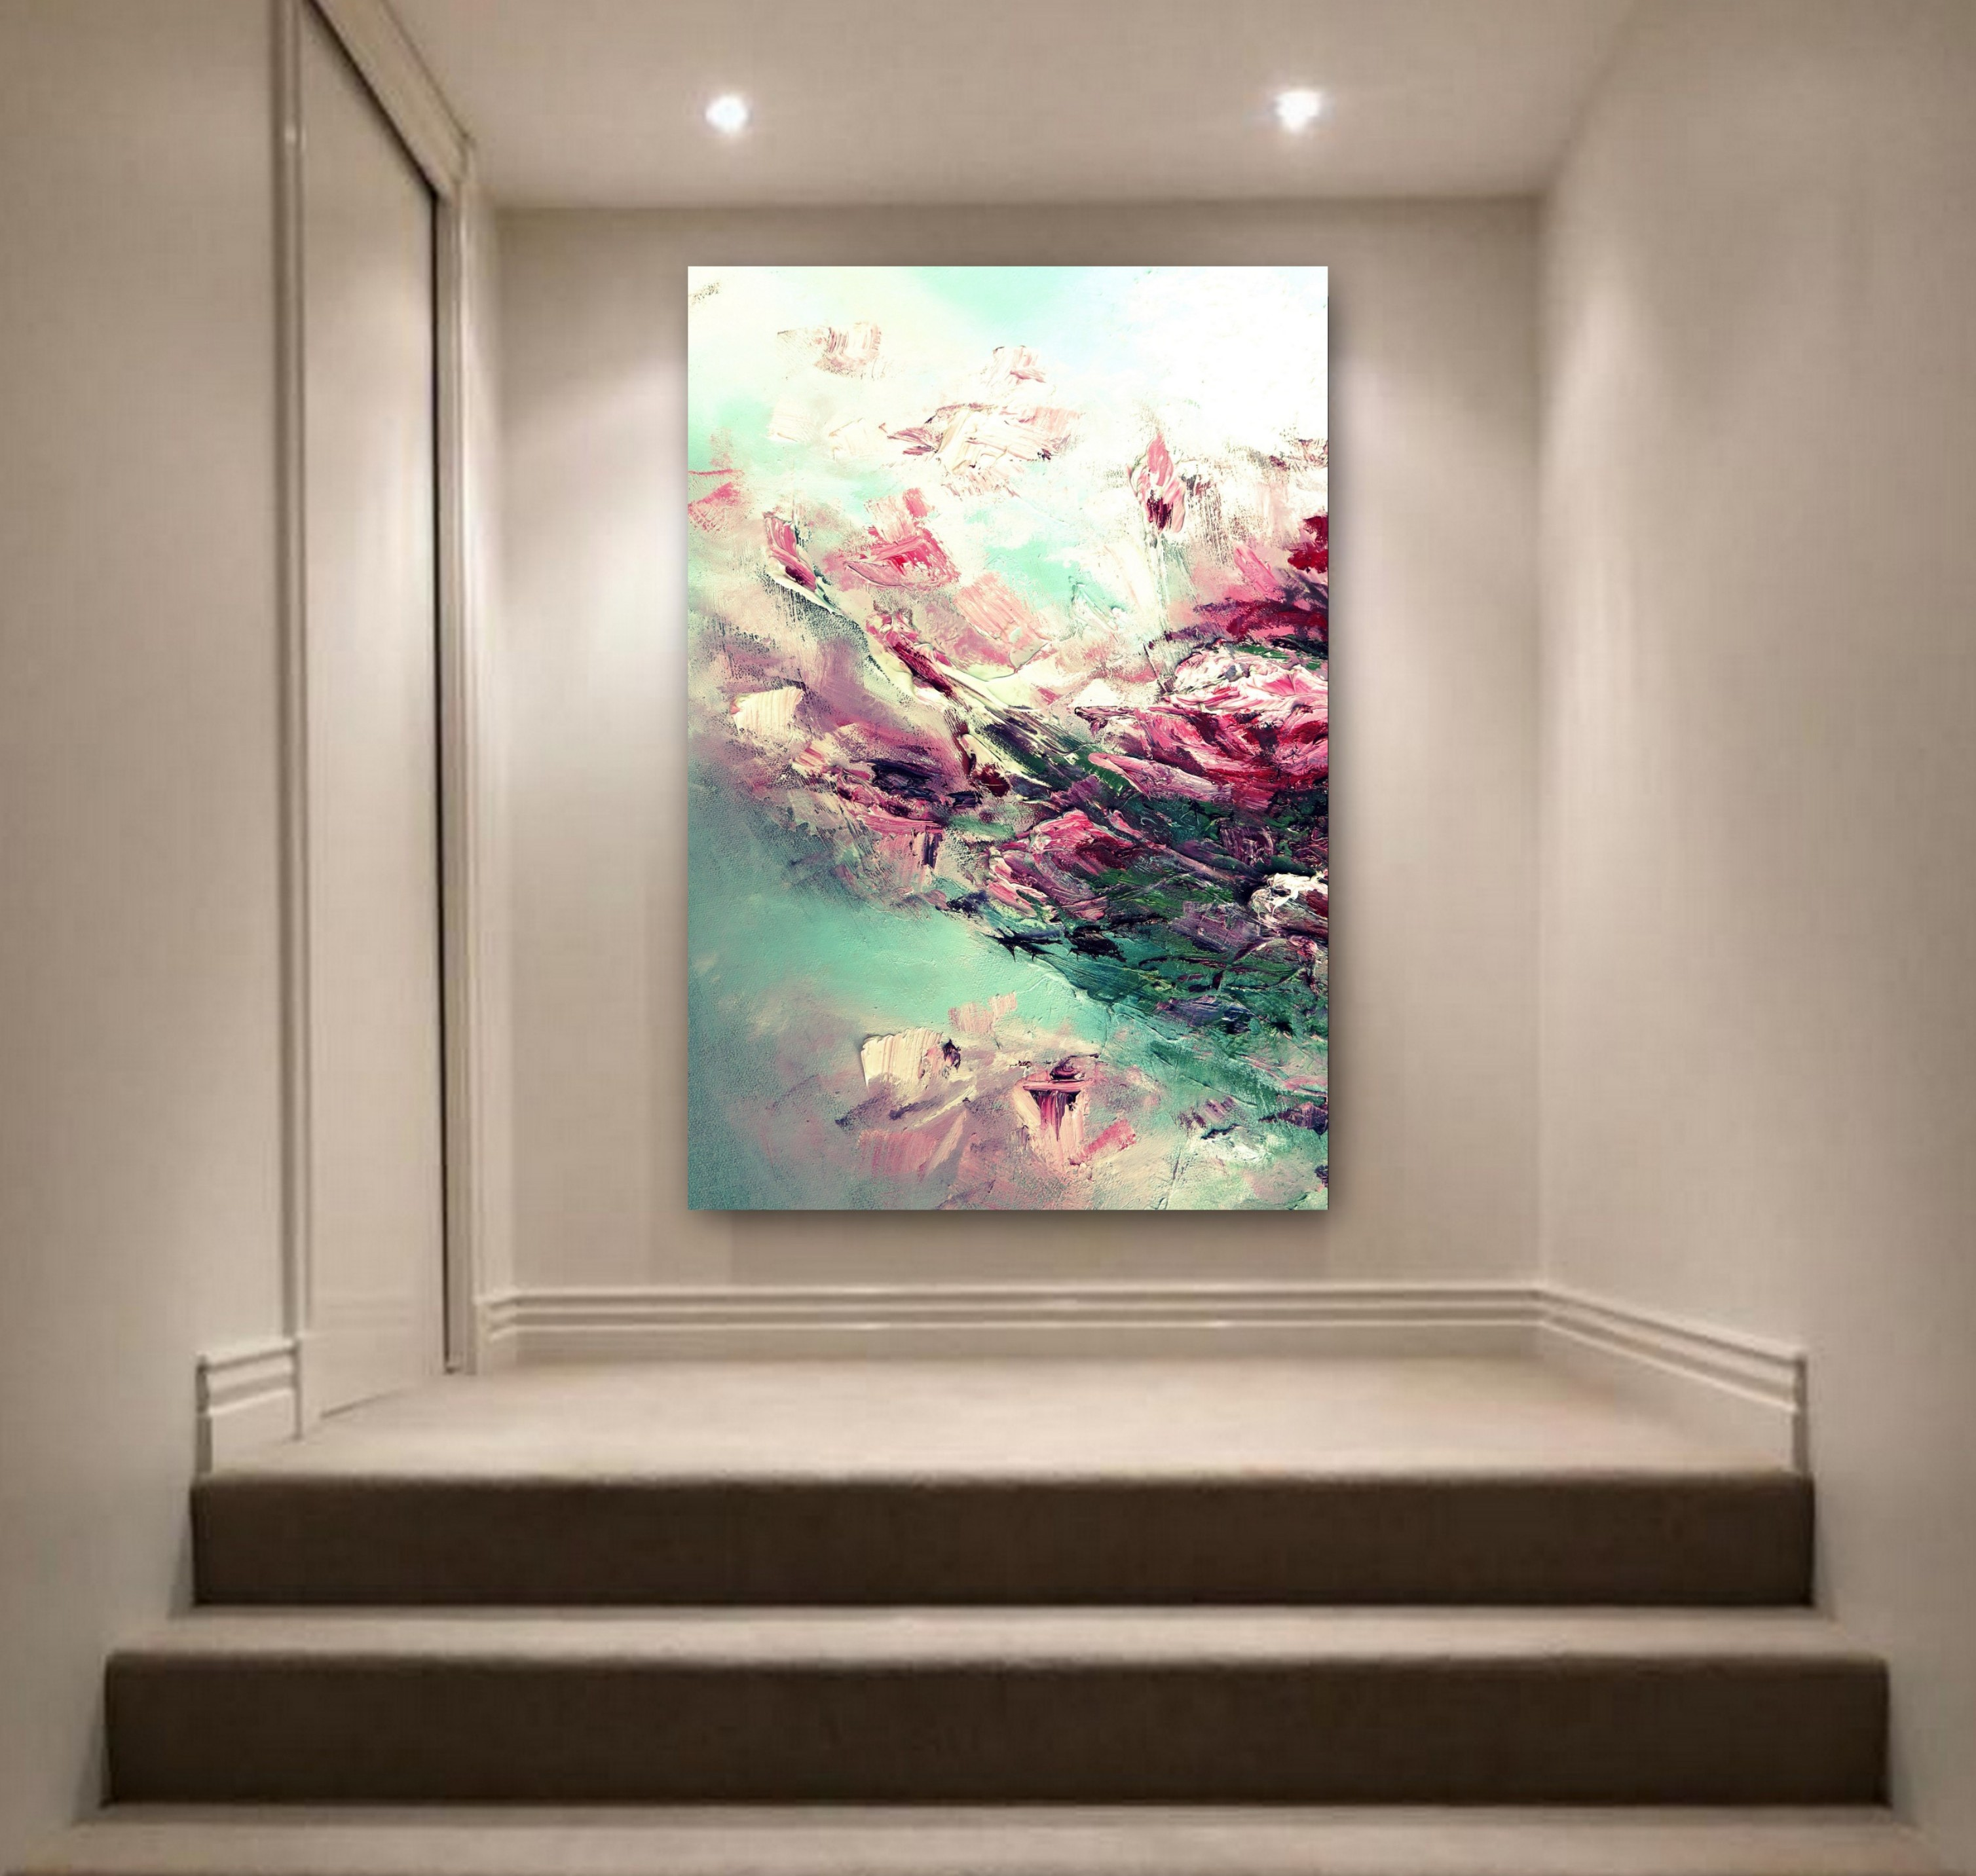 Floral Wall Art For Sale Petra Meikle De Vlas2